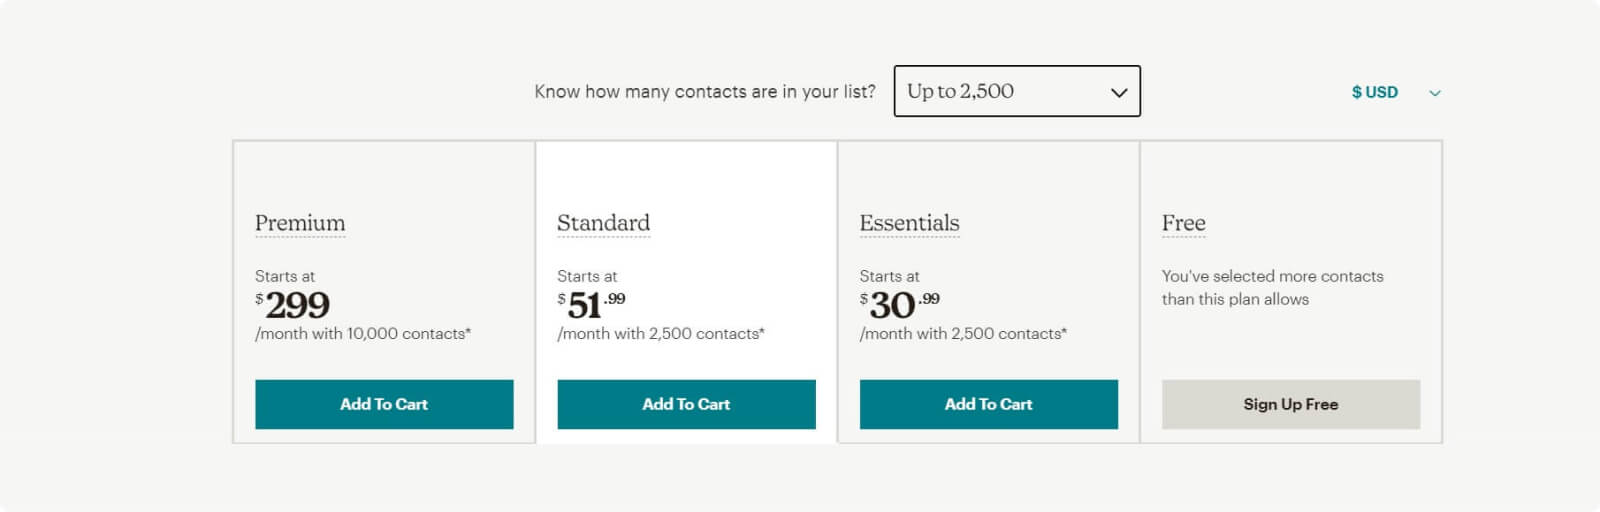 Mailchimp's marketing category has four pricing plans